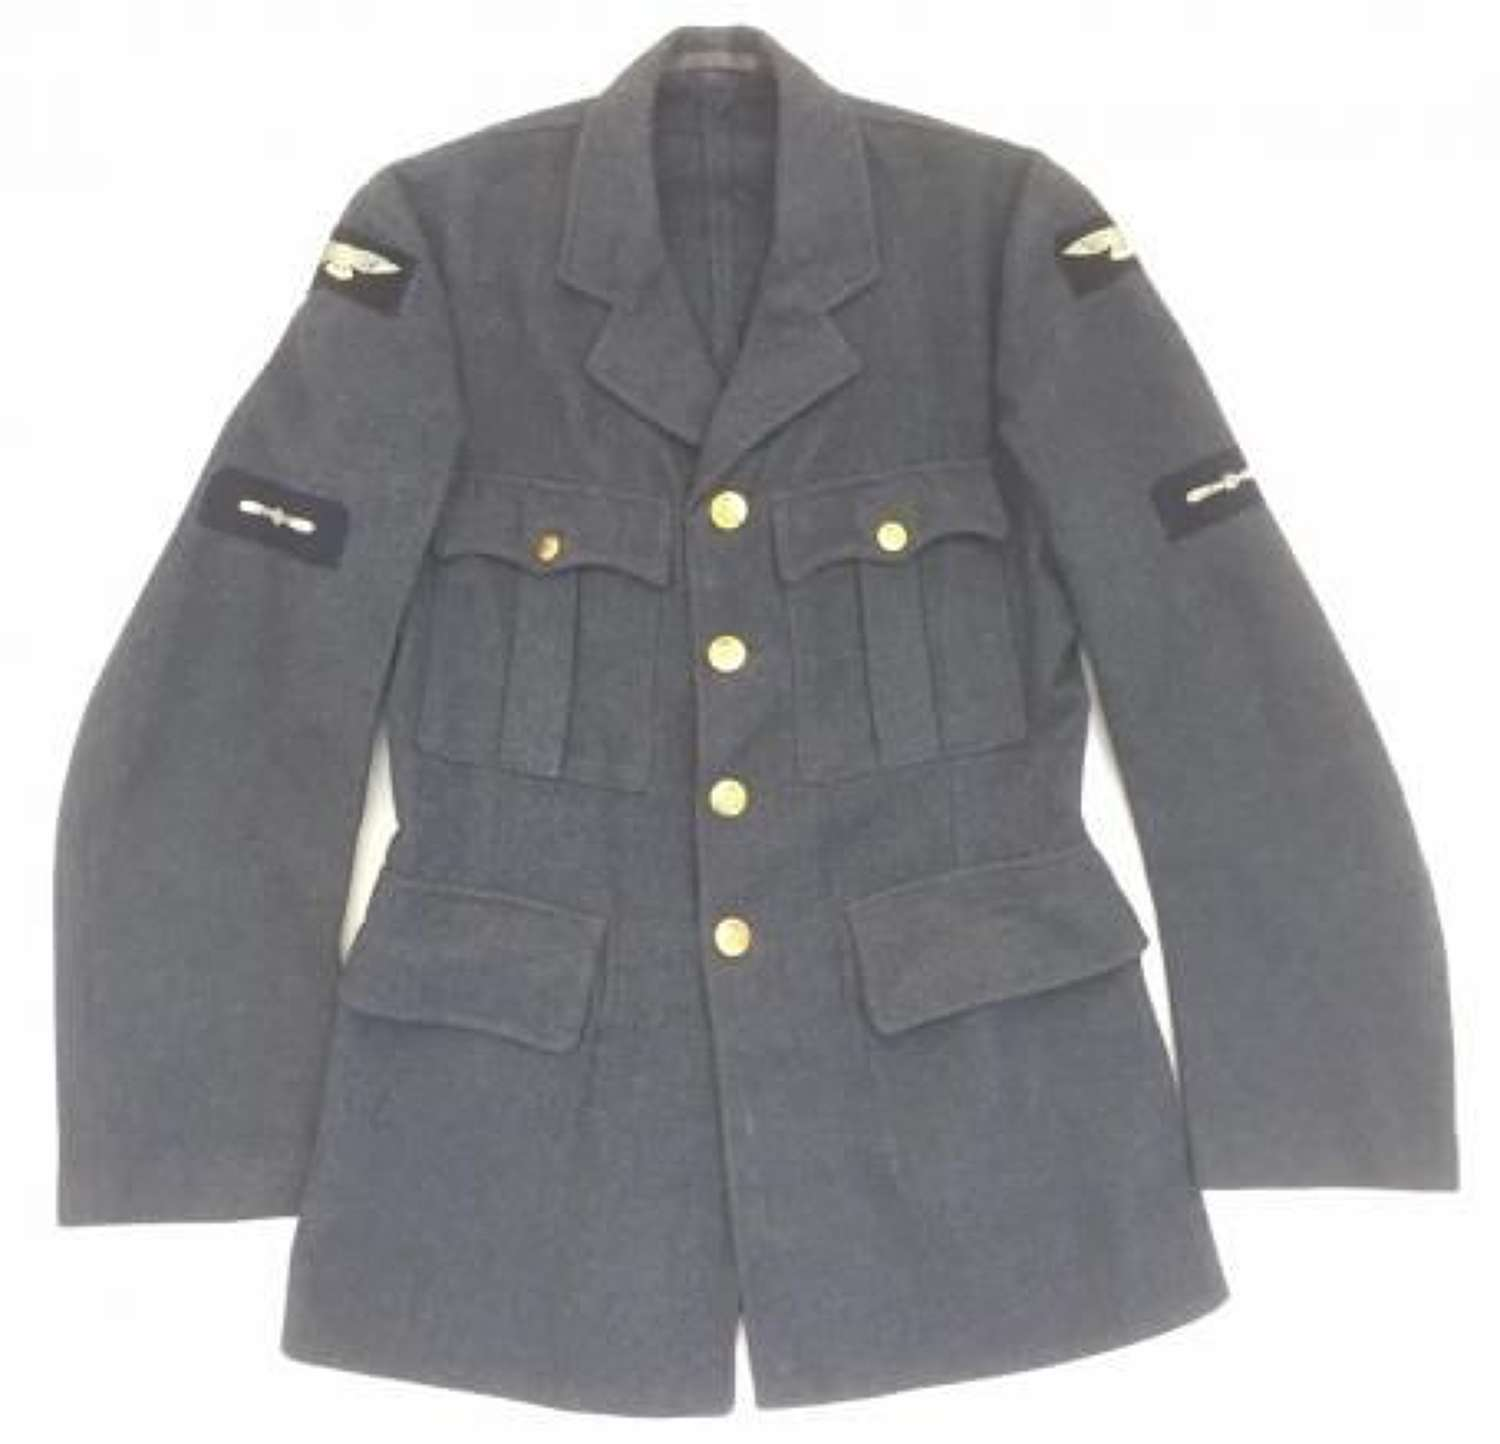 1951 Dated RAF OA Tunic with Early Insgnia - Size 11